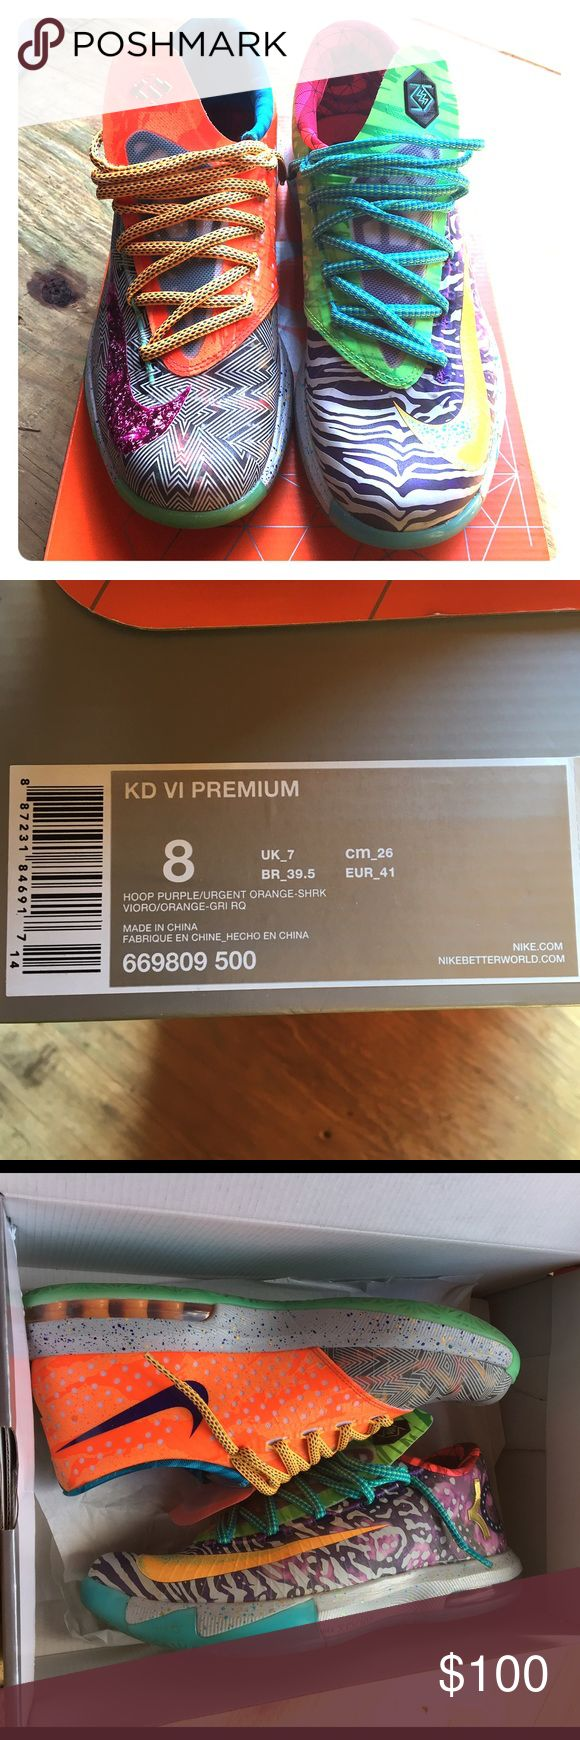 Nike KD 6 premium: 'What The KD?' Crazy pair of KD 6's! Men's size 8, but I wear women's size 9. Very comfortable sneakers & in great condition; comes with box  Nike Shoes Athletic Shoes